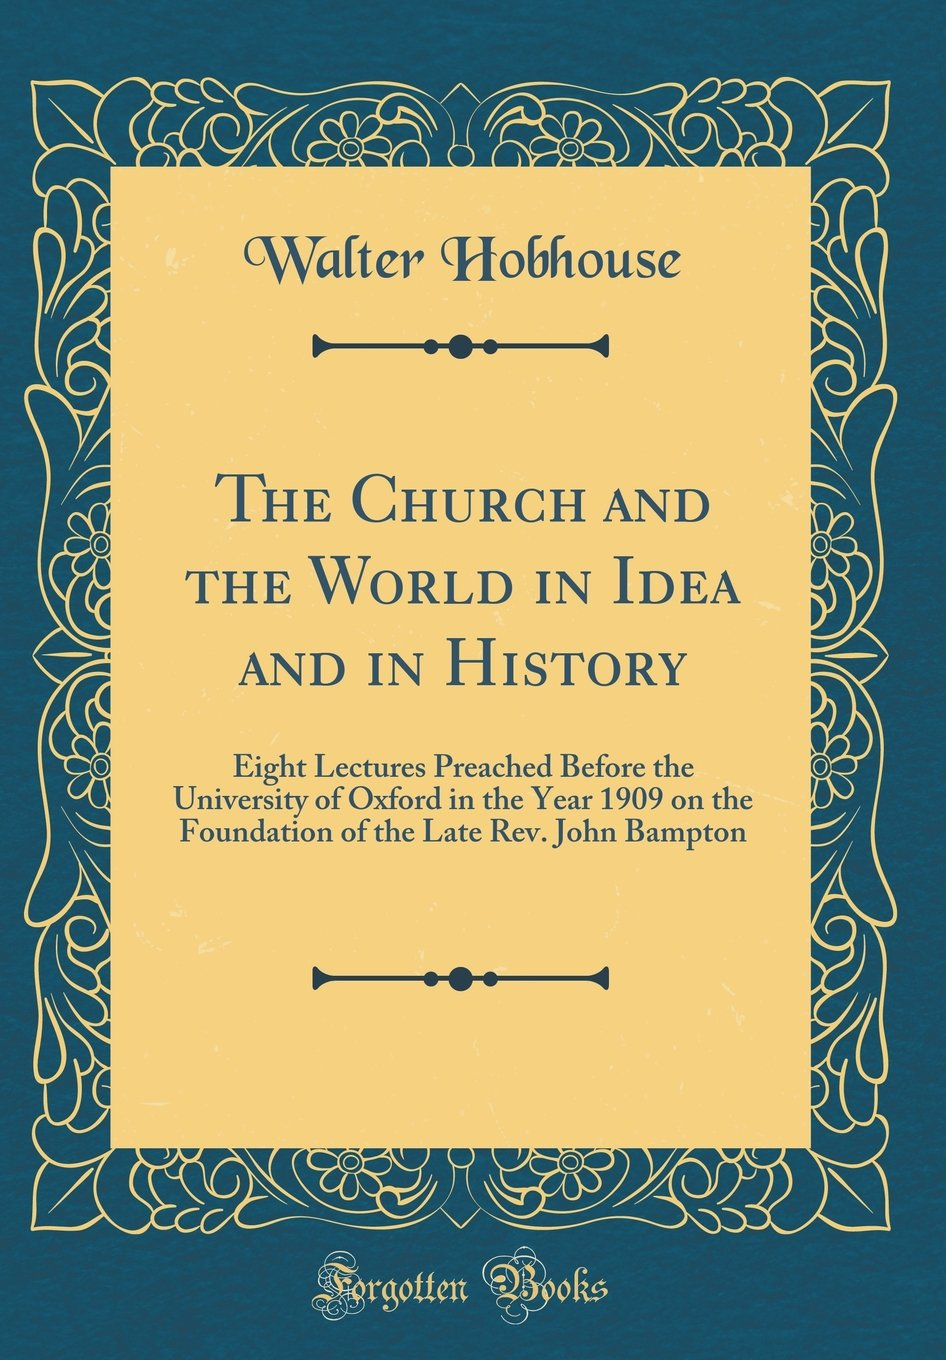 Download The Church and the World in Idea and in History: Eight Lectures Preached Before the University of Oxford in the Year 1909 on the Foundation of the Late Rev. John Bampton (Classic Reprint) pdf epub